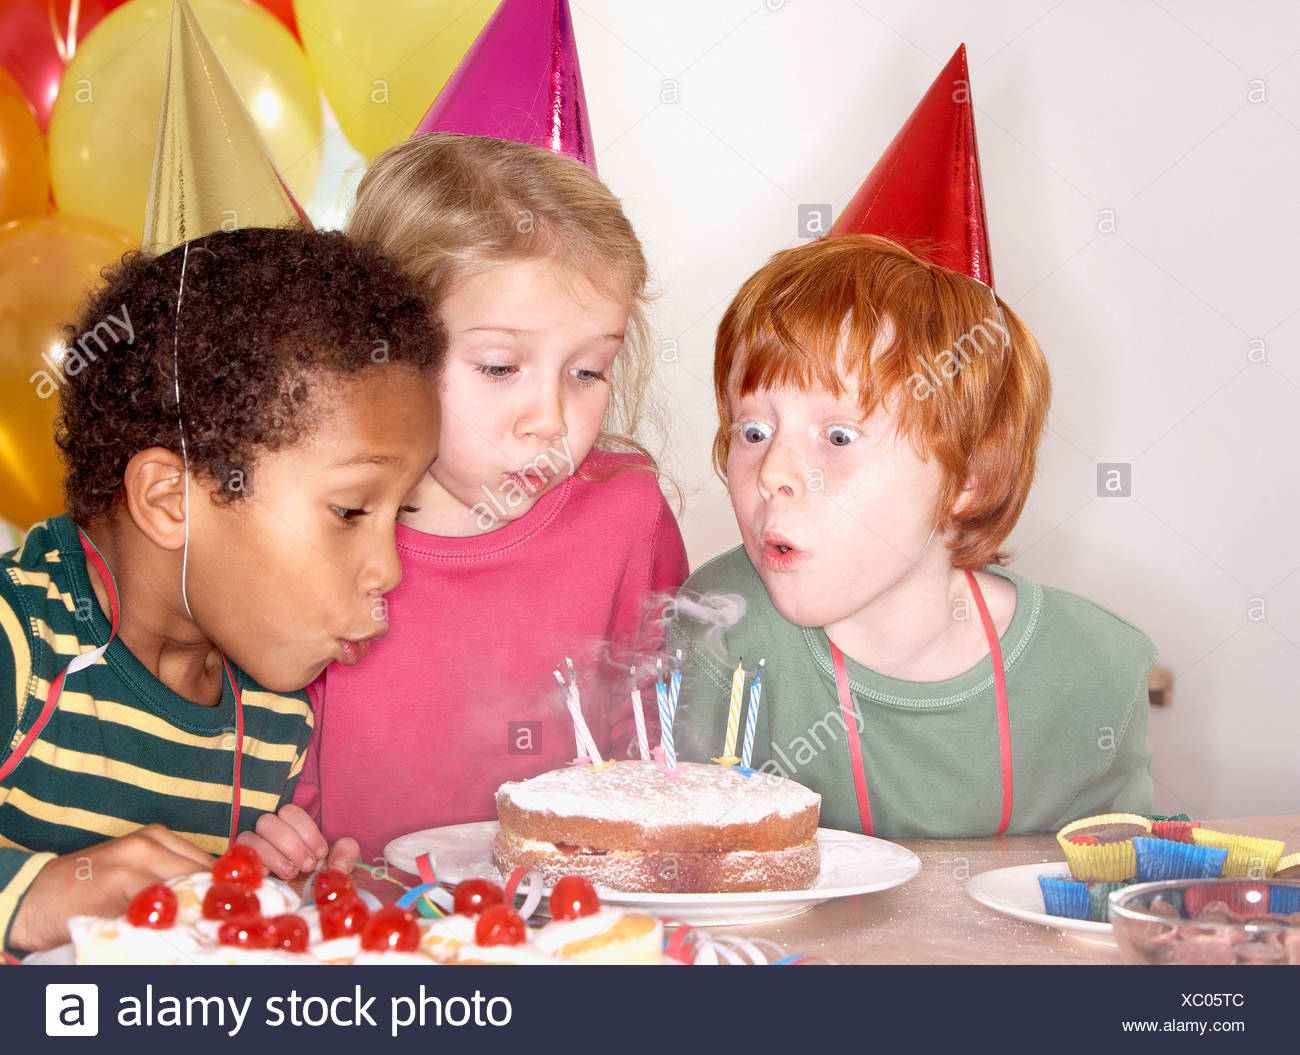 Three kids at a birthday party blowing out candles on cake - Stock Image